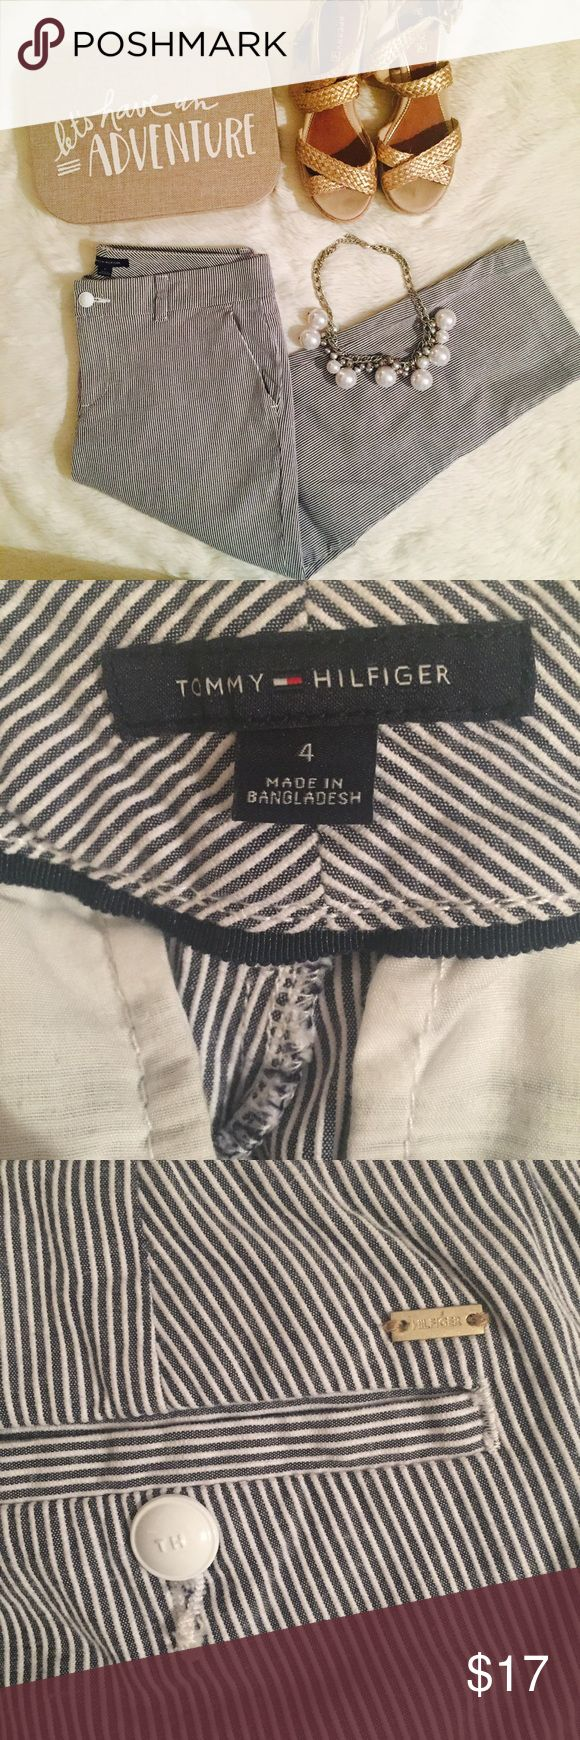 Tommy Hilfiger Seersucker Capris Cropped pants from Tommy Hilfiger in a navy and white seersucker stripe. Cute white buttons on the back pockets. EUC Tommy Hilfiger Pants Ankle & Cropped